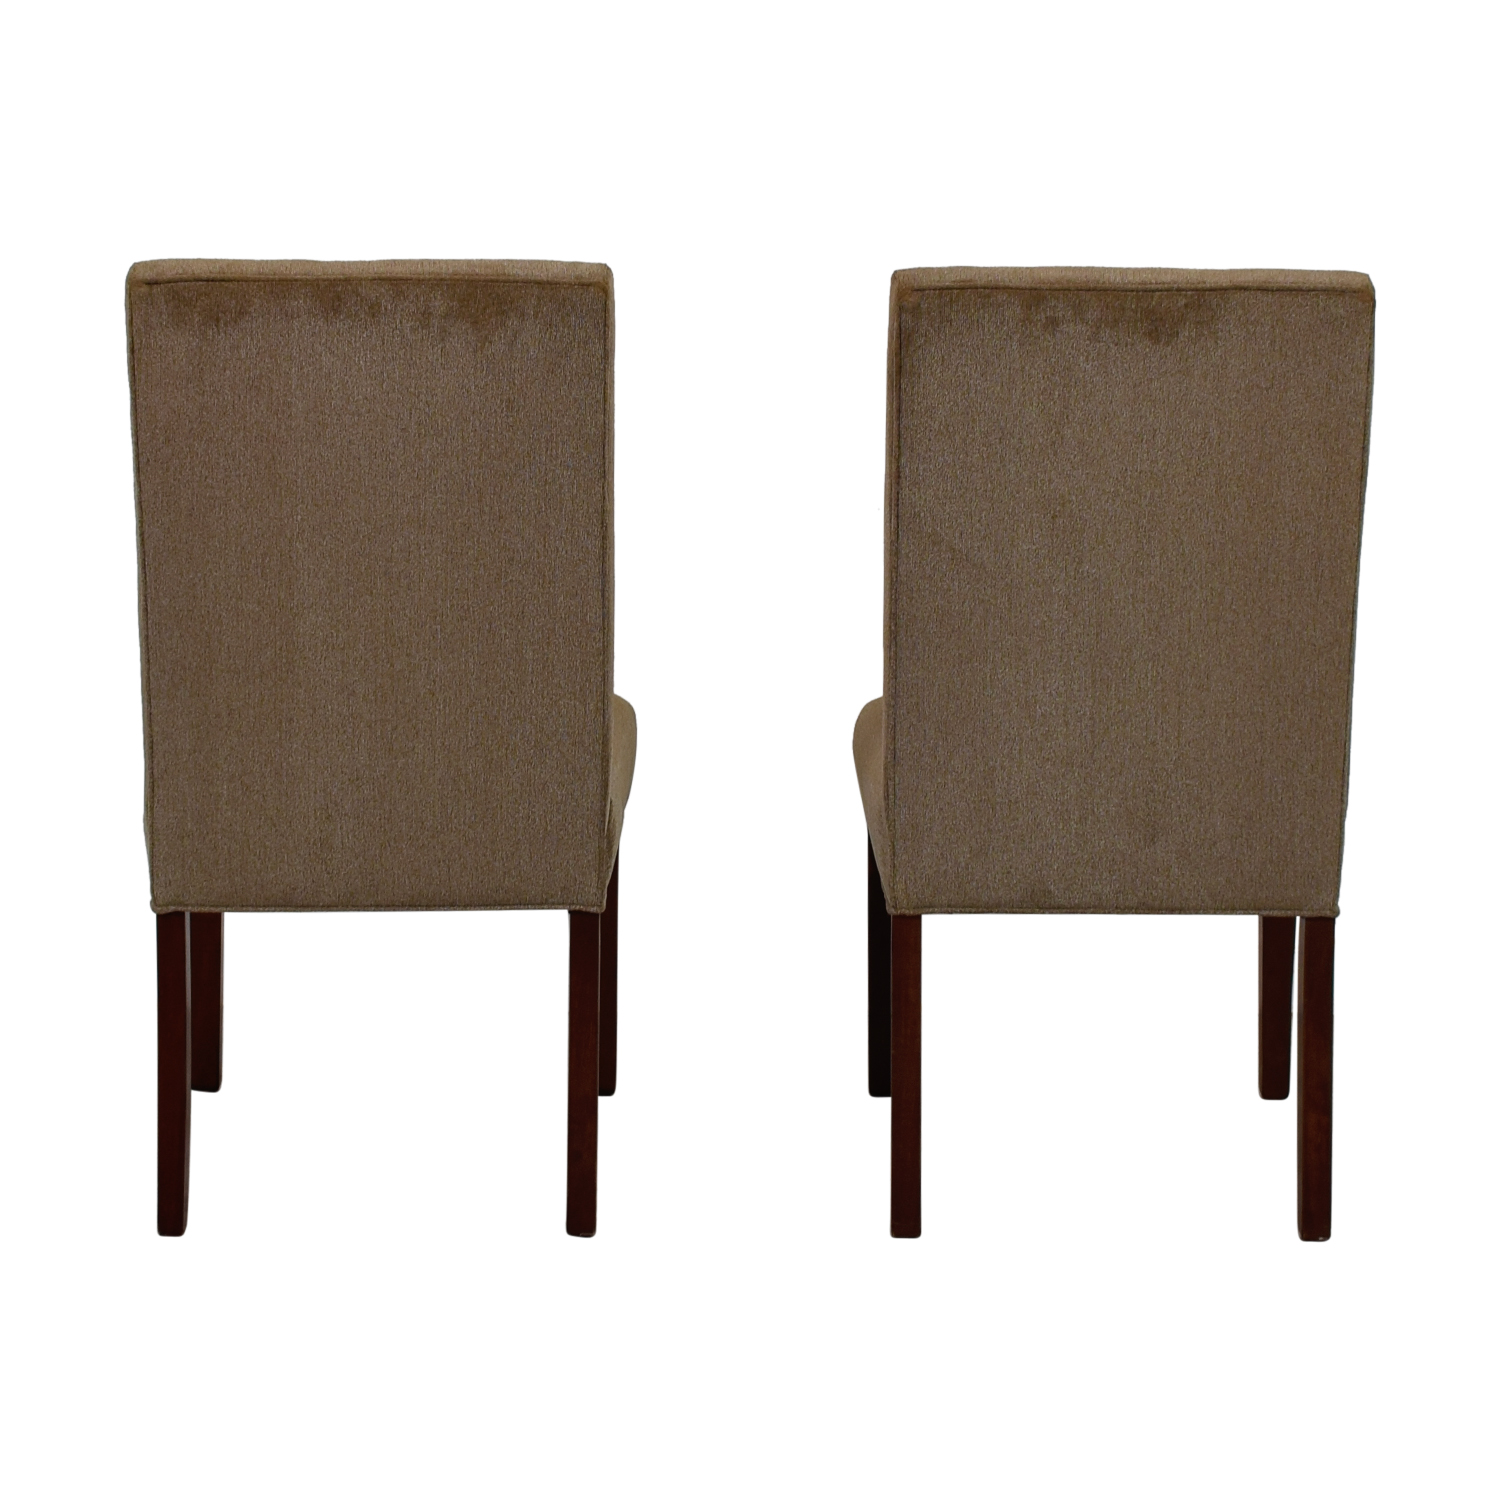 Ethan Allen Ethan Allen Accent Chairs used